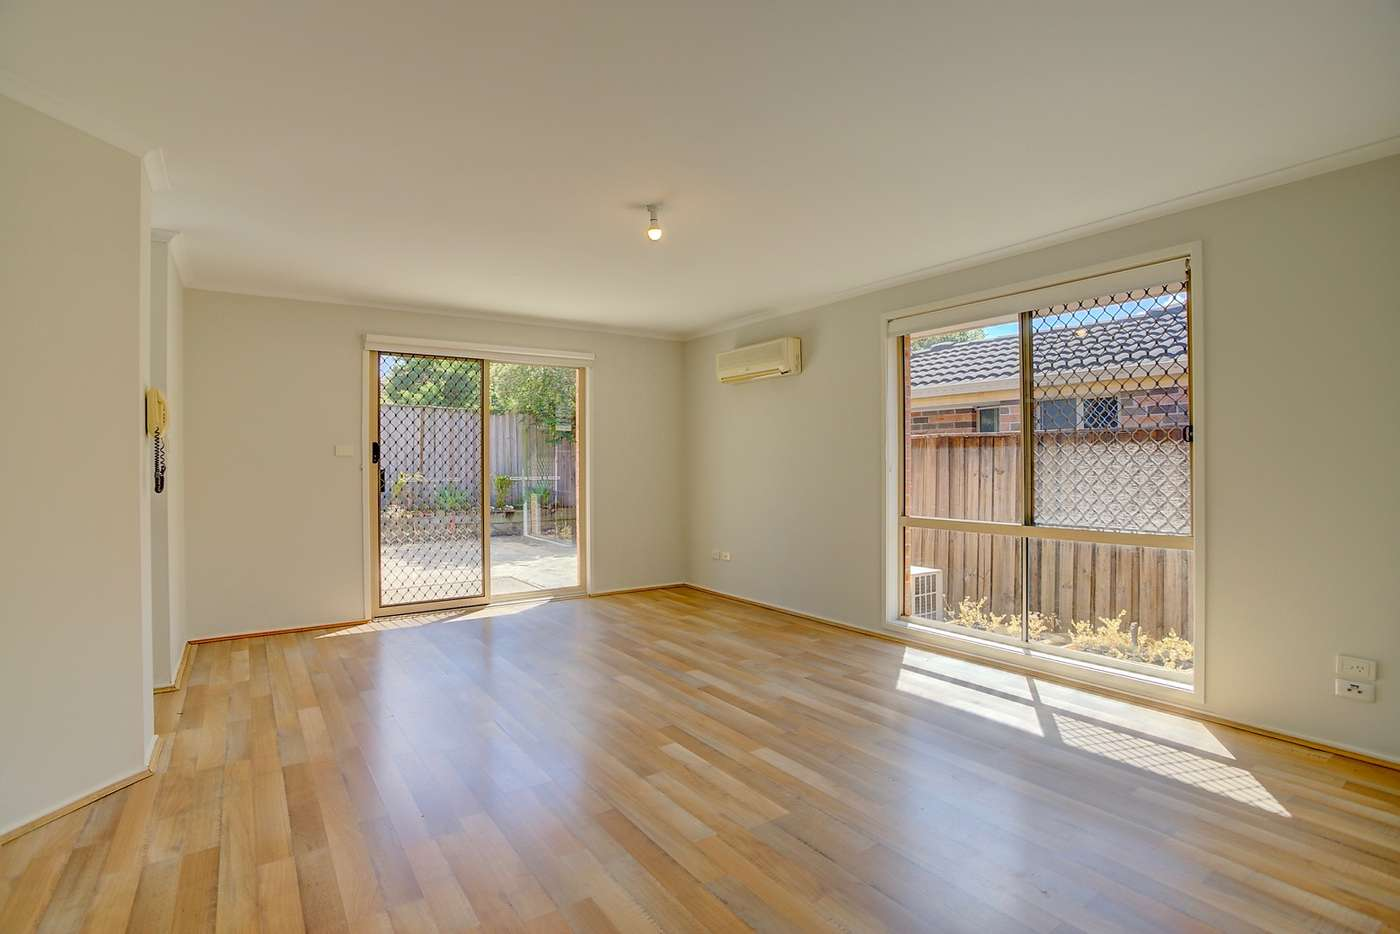 Sixth view of Homely house listing, 9 Tristania Grove, Greenacre NSW 2190